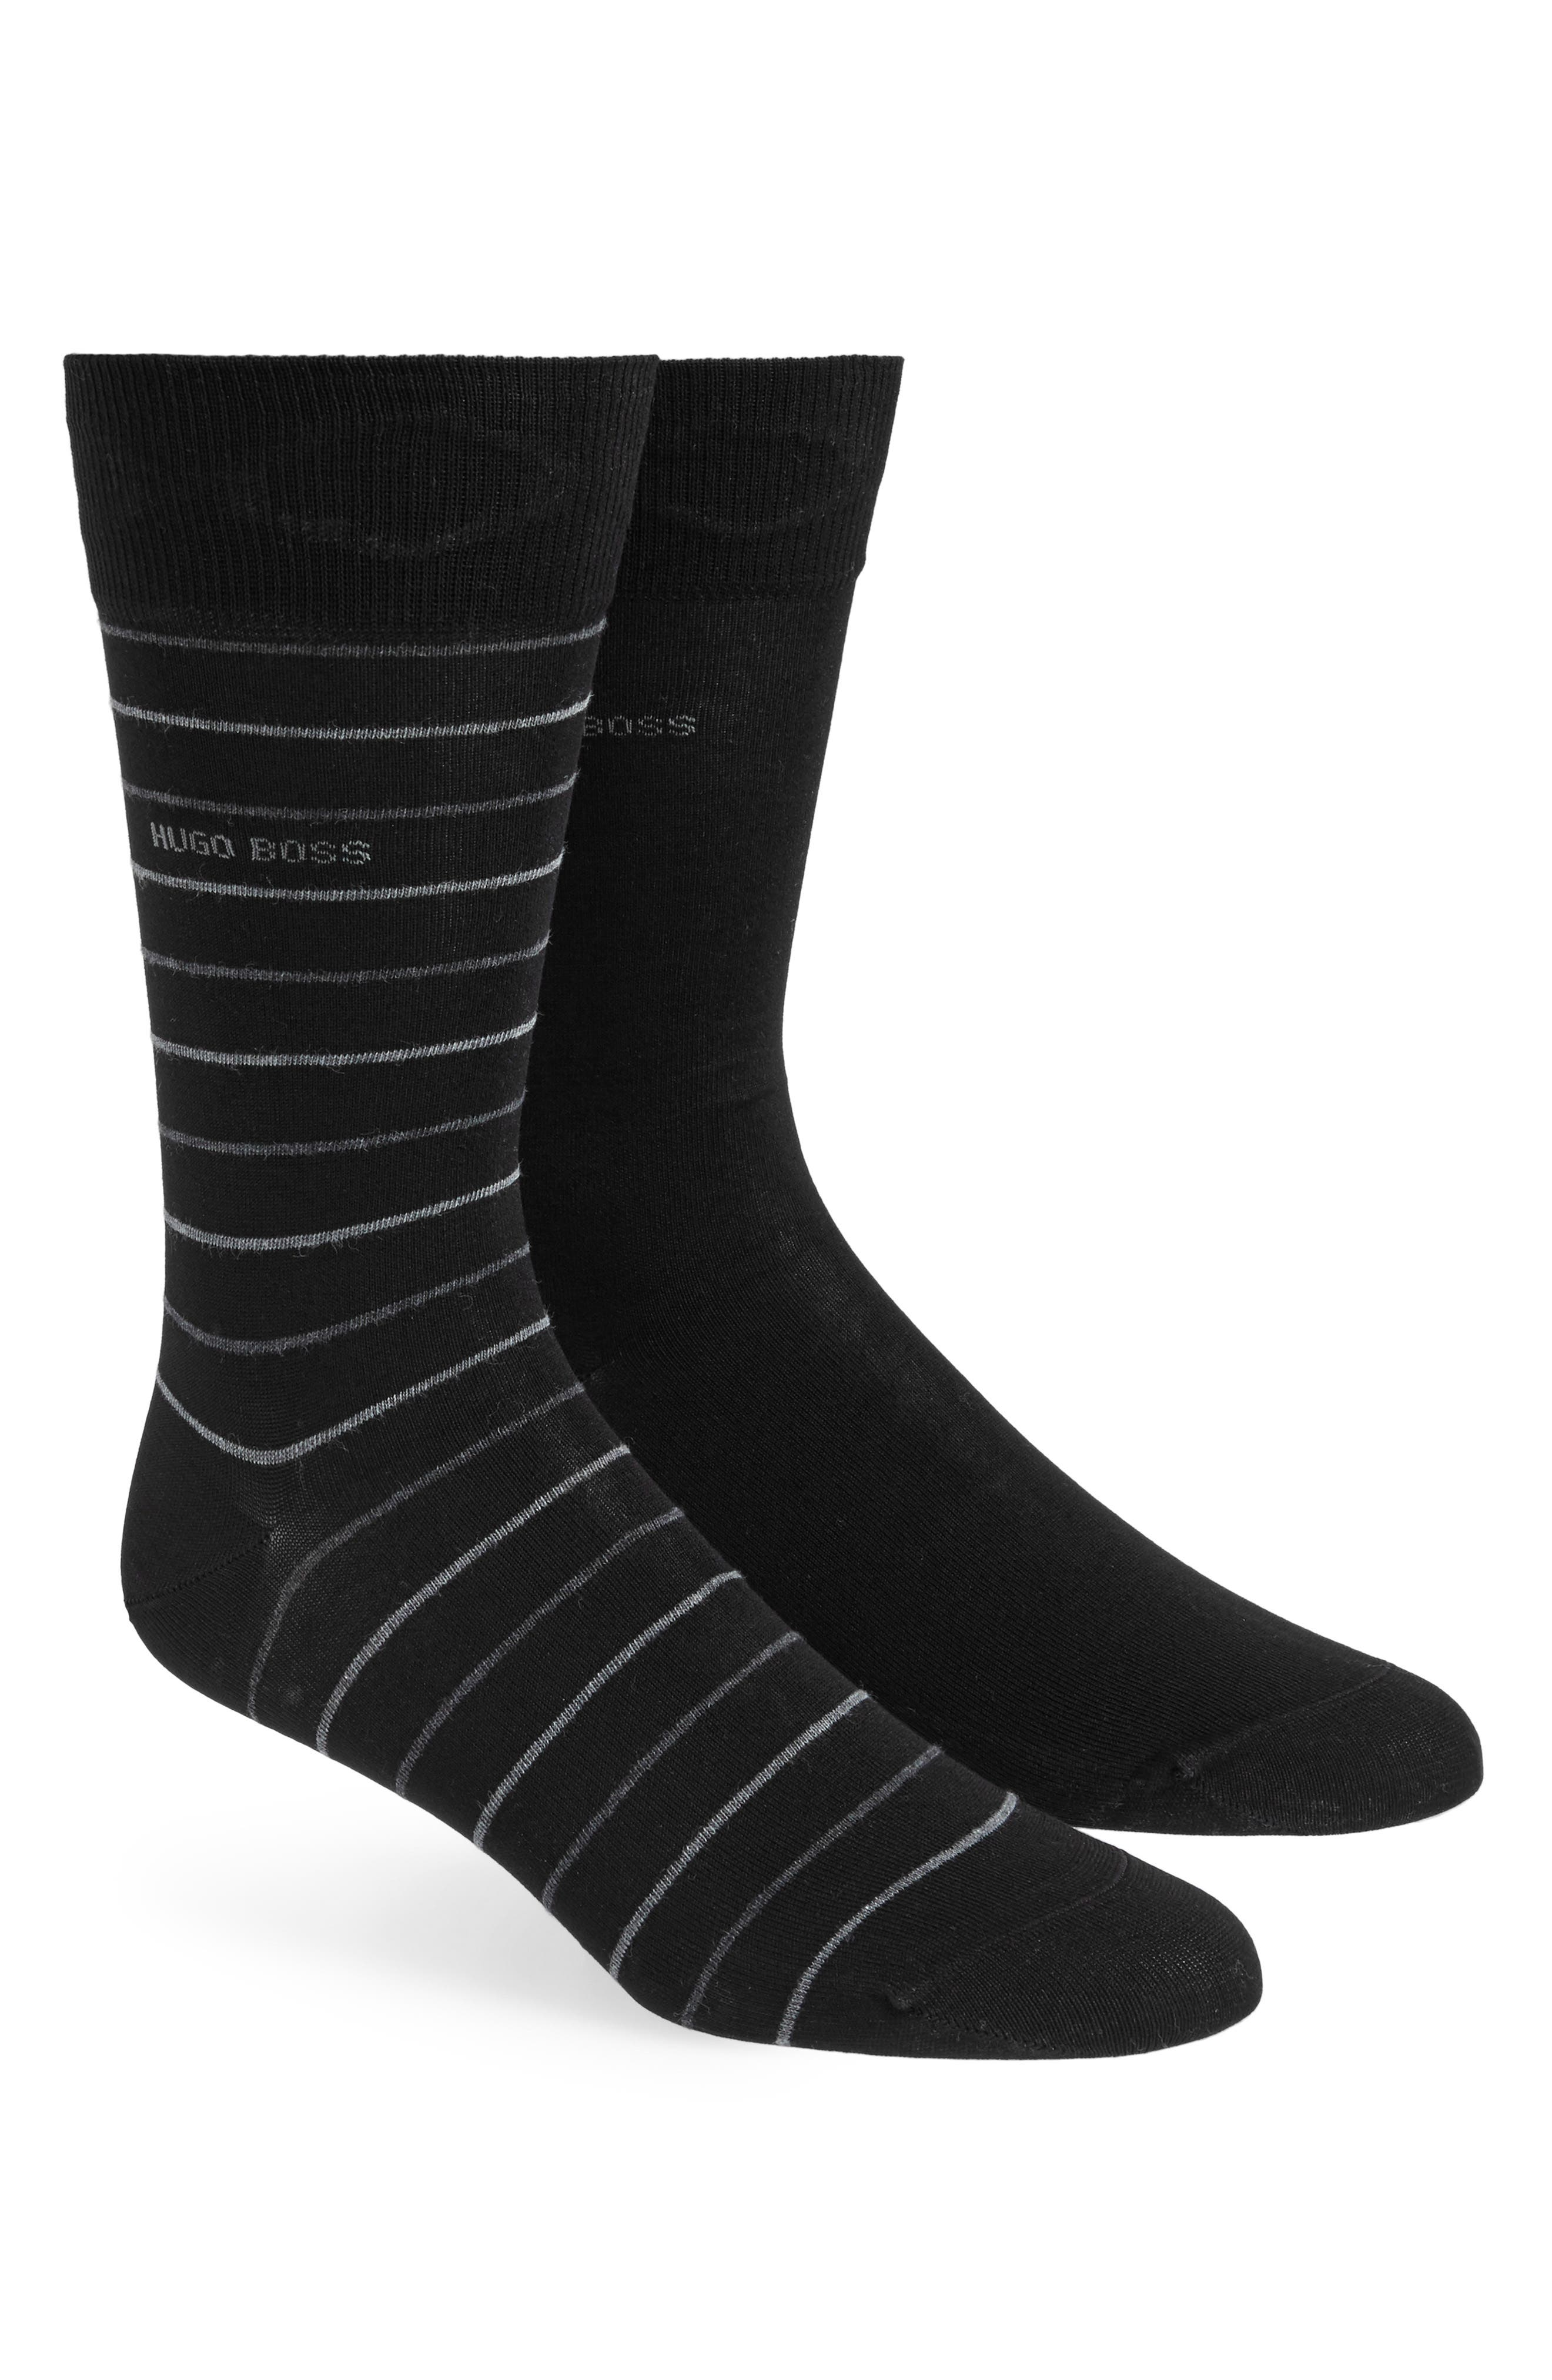 Assorted 2-Pack Socks,                         Main,                         color, 001